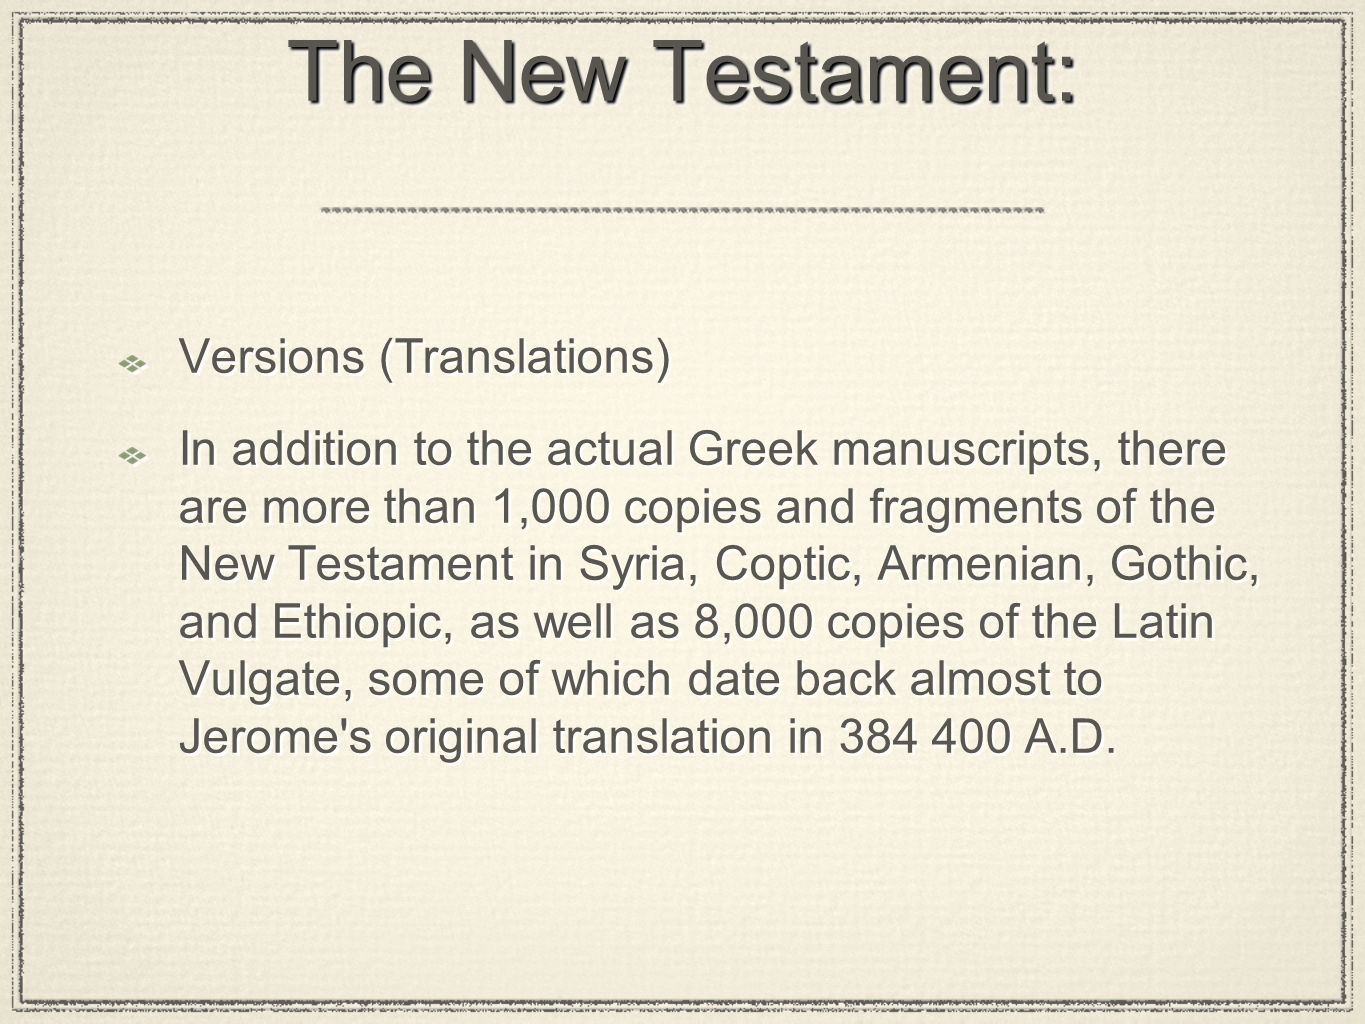 The New Testament: Versions (Translations)